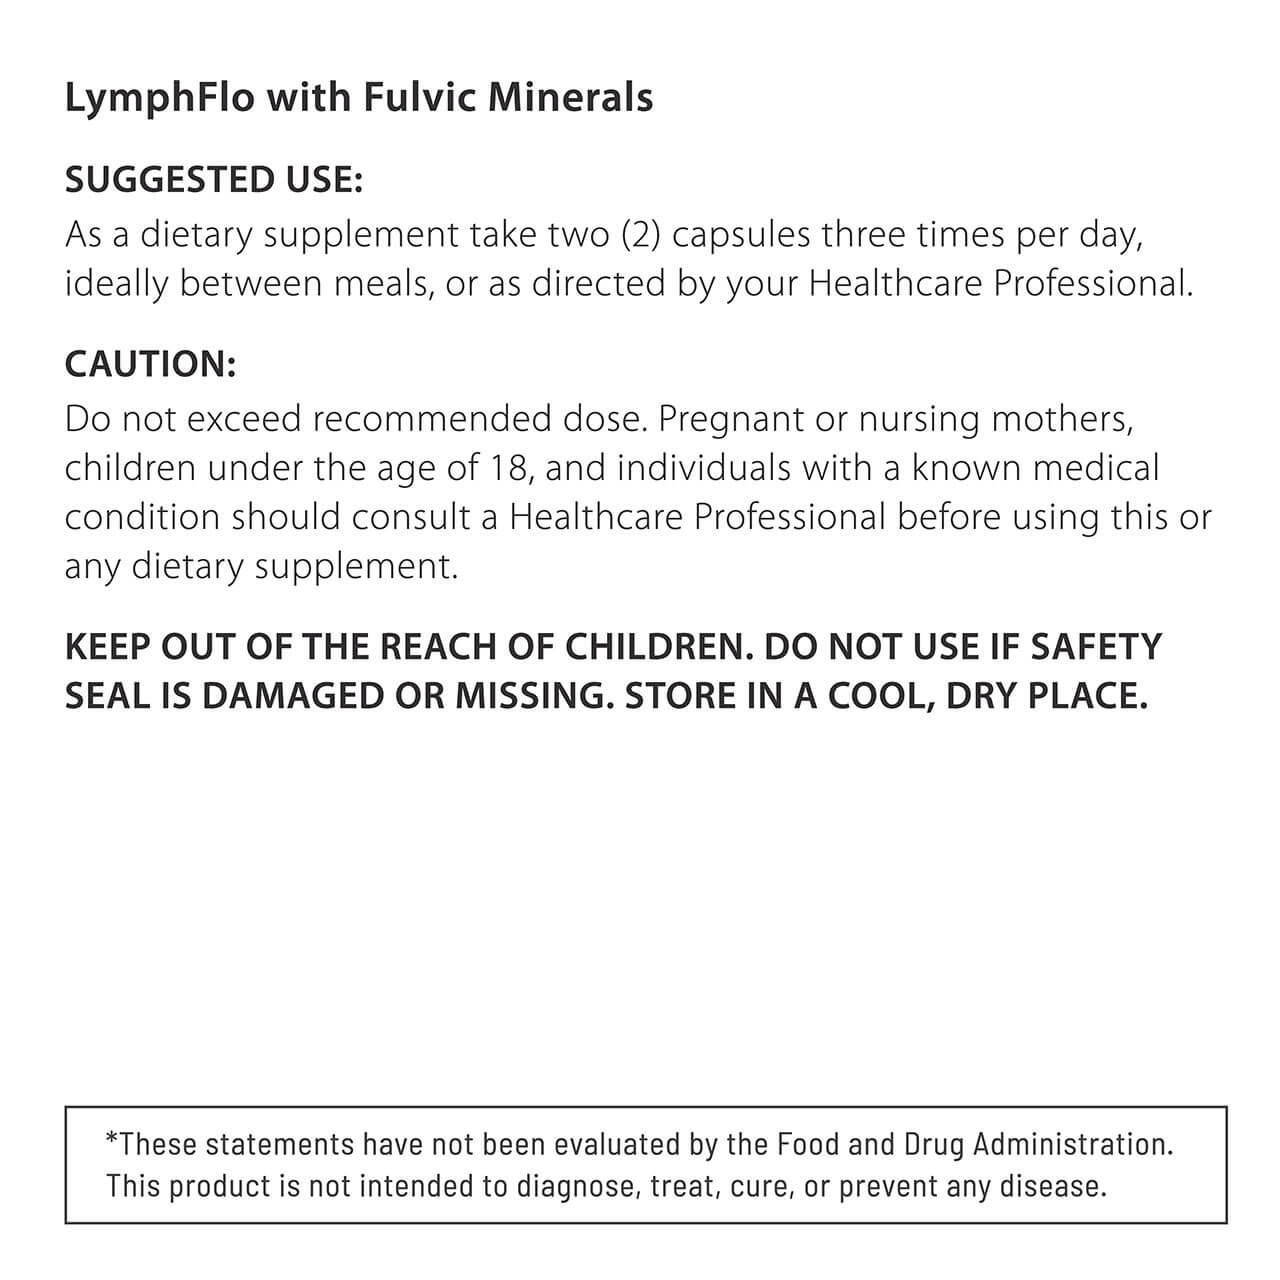 LymphFlo with Fulvic Minerals